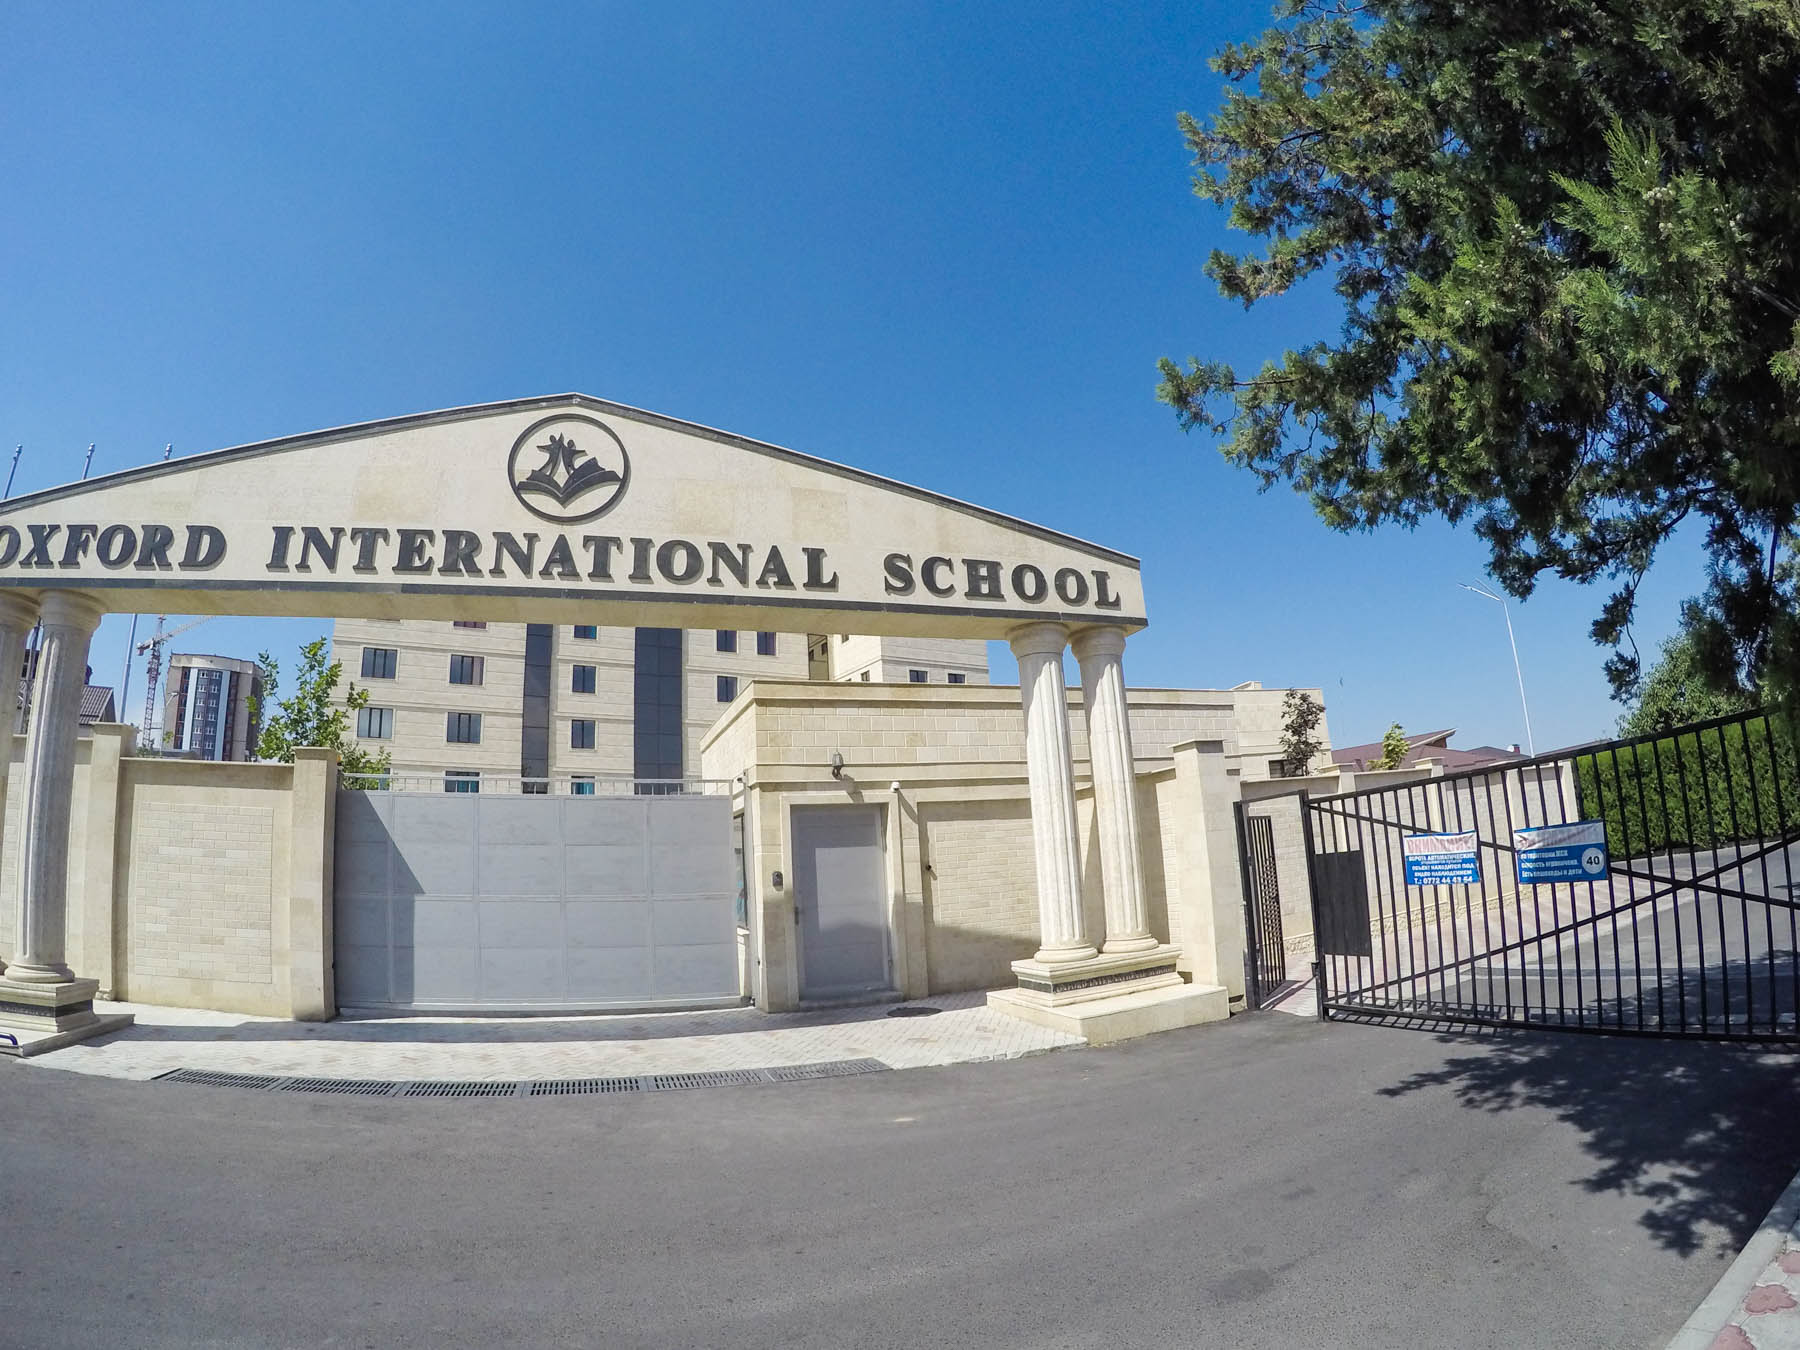 The Oxford International School in Bishkek, Kyrgyzstan